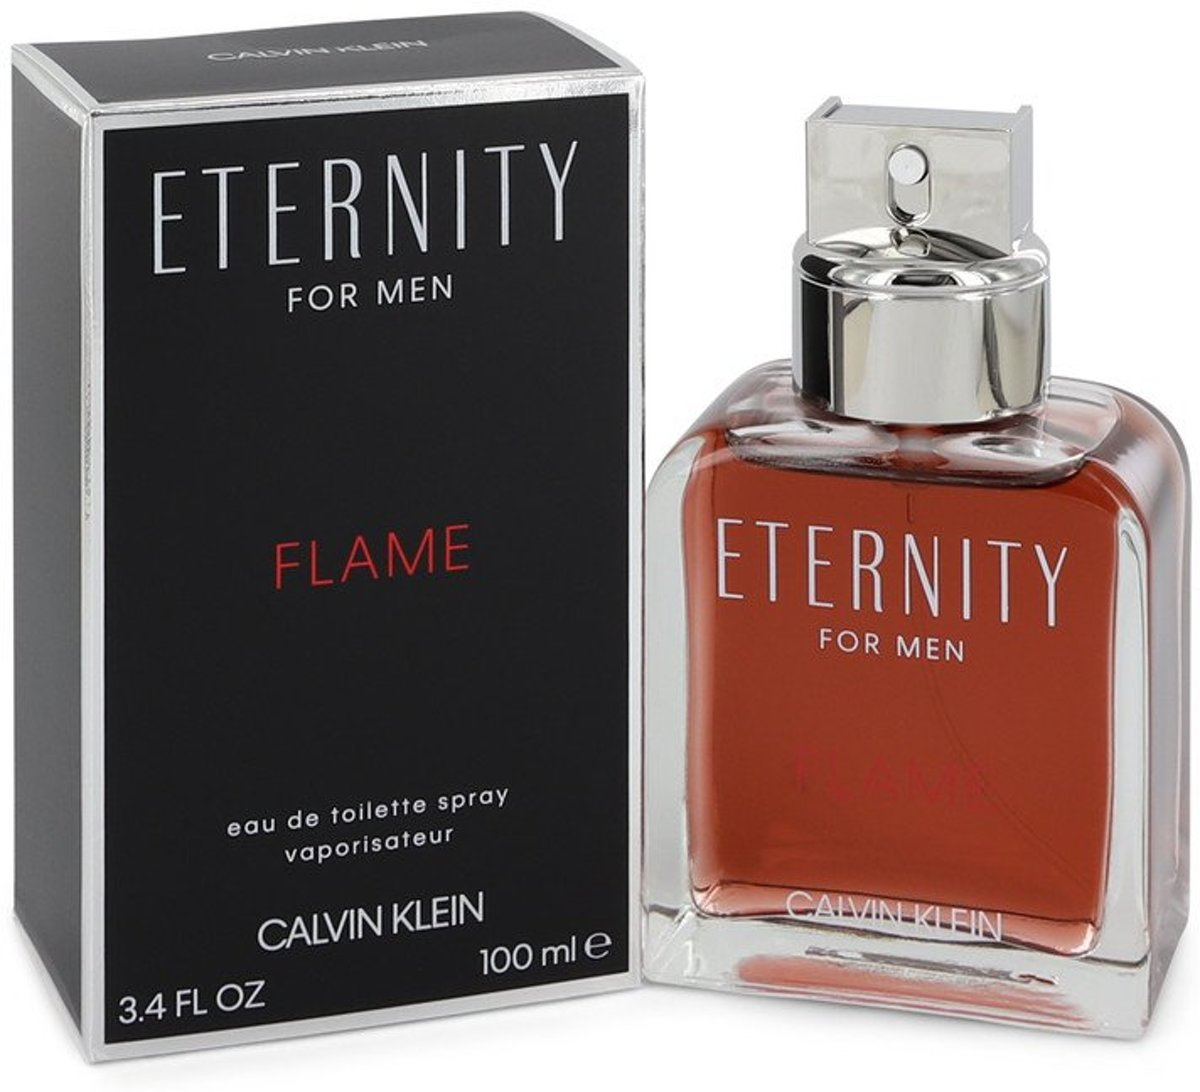 Calvin Klein Eternity Flame eau de toilette spray 100 ml